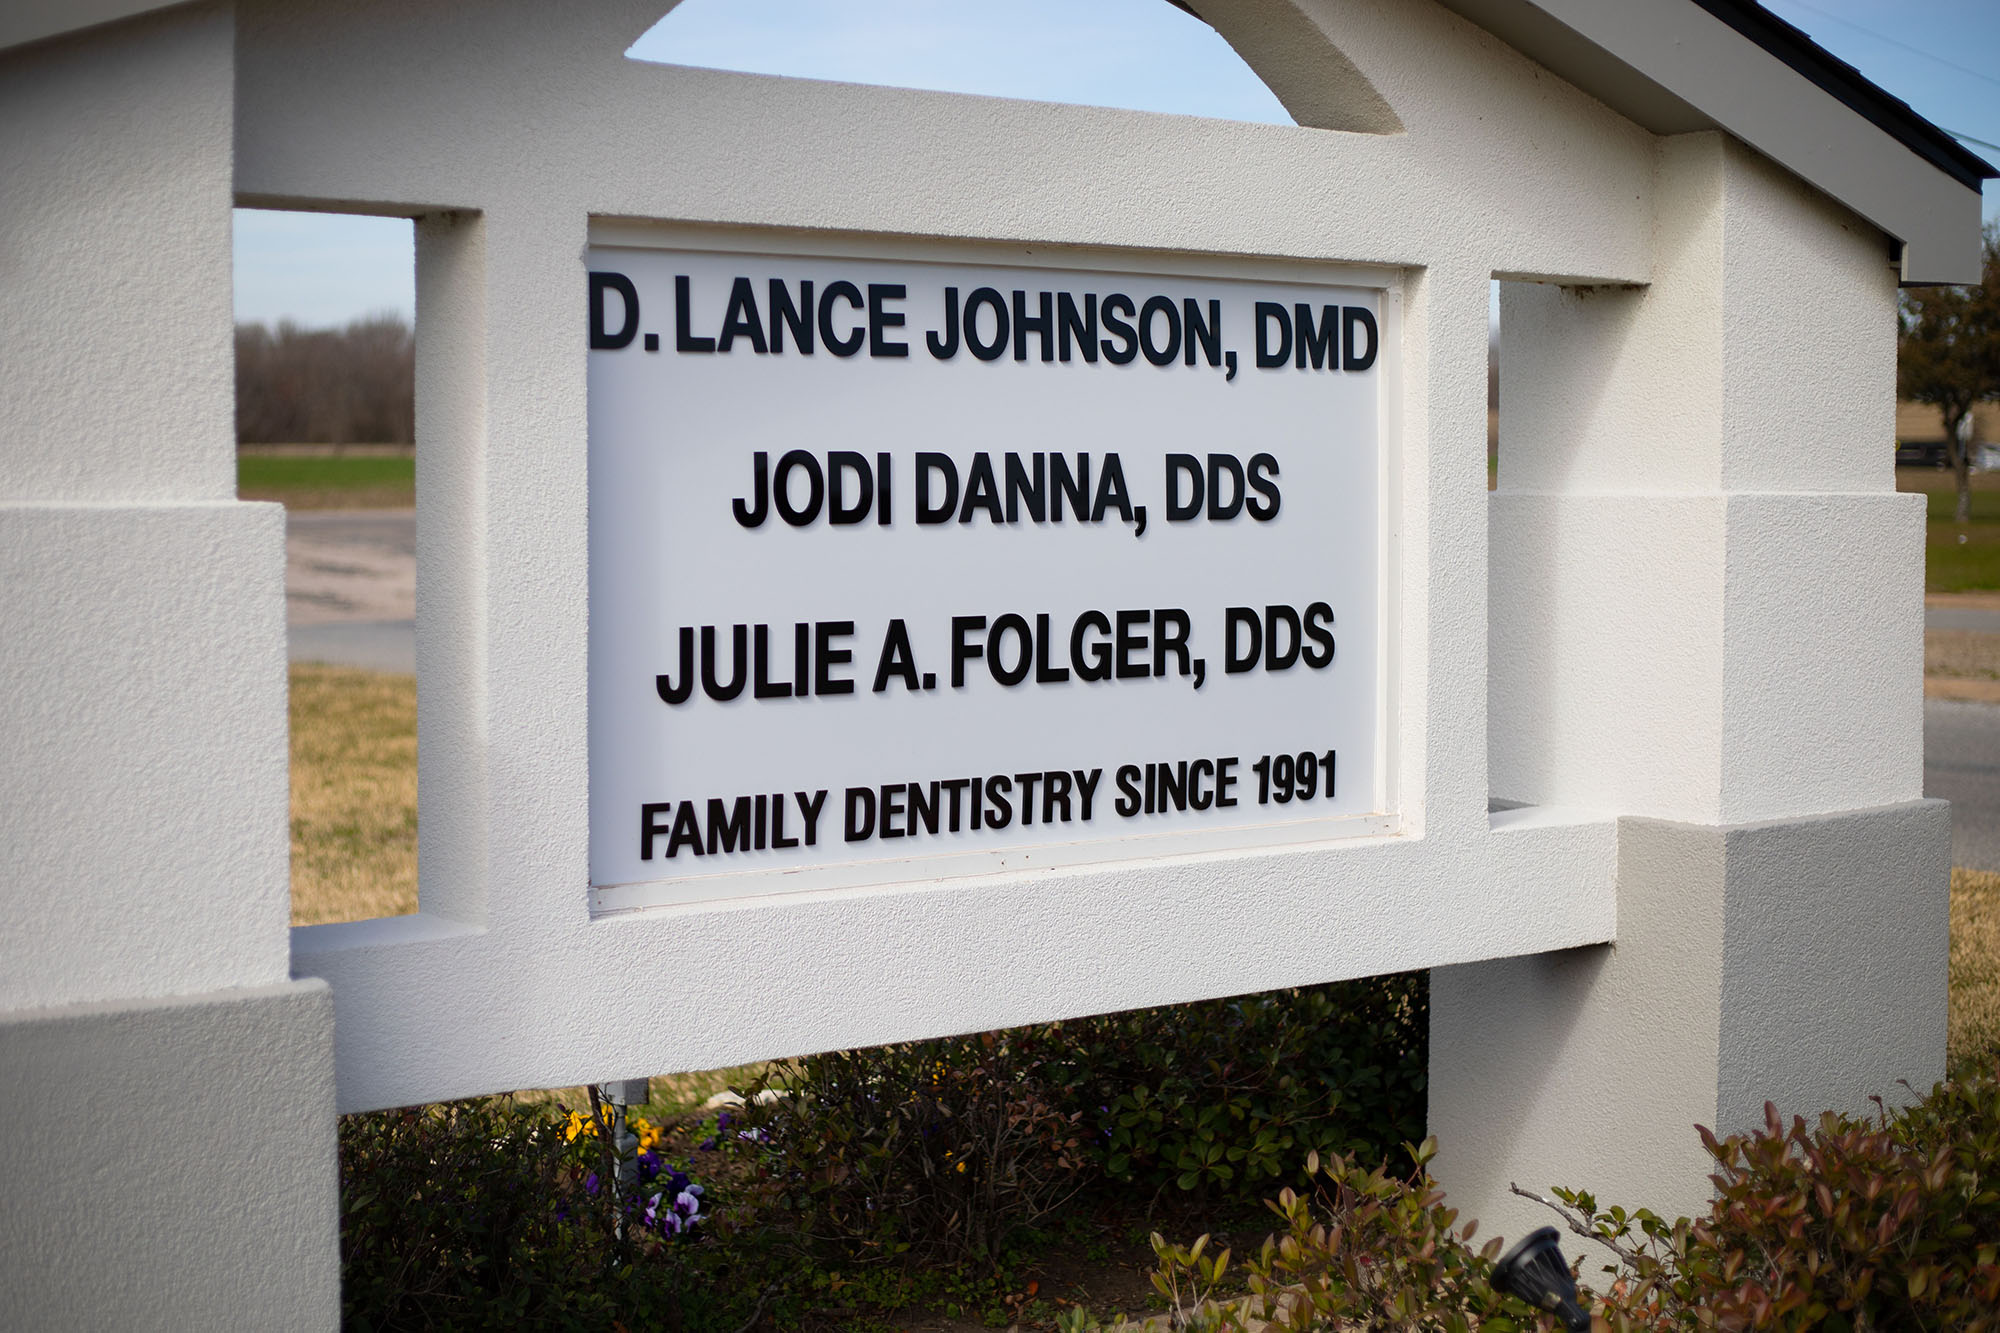 Dr. Lance Johnson Family Dentistry - Best Dentists in Sherman, Texas and Surrounding Area, Exterior